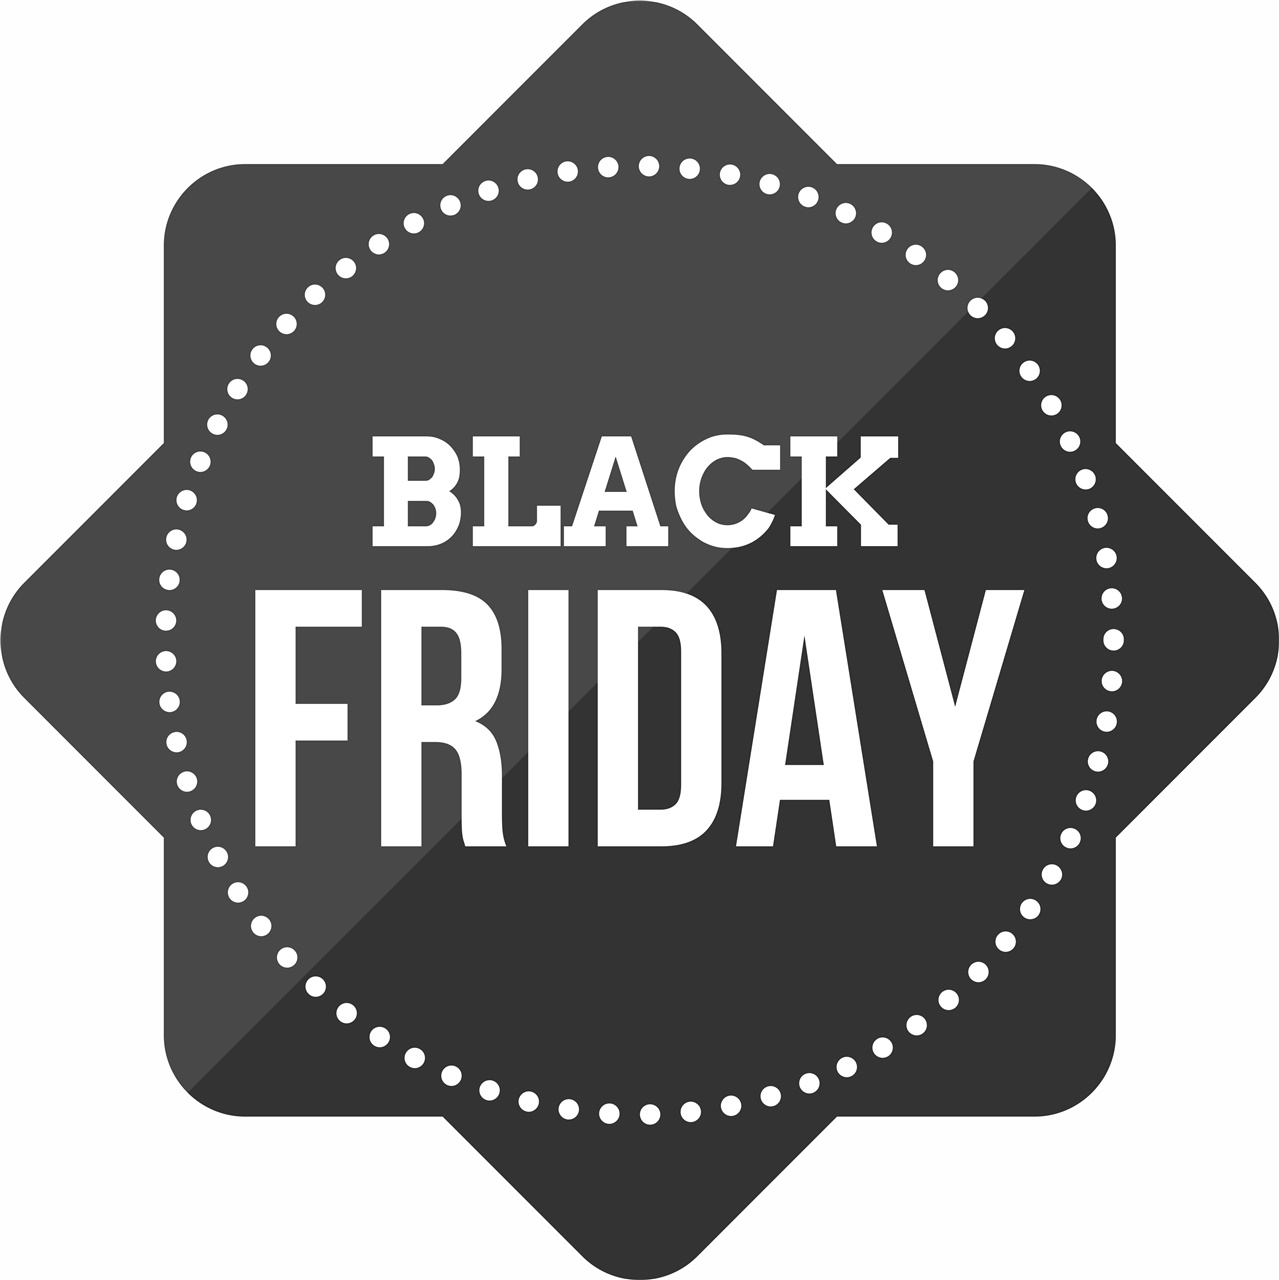 Adesivo removibile Black friday nero